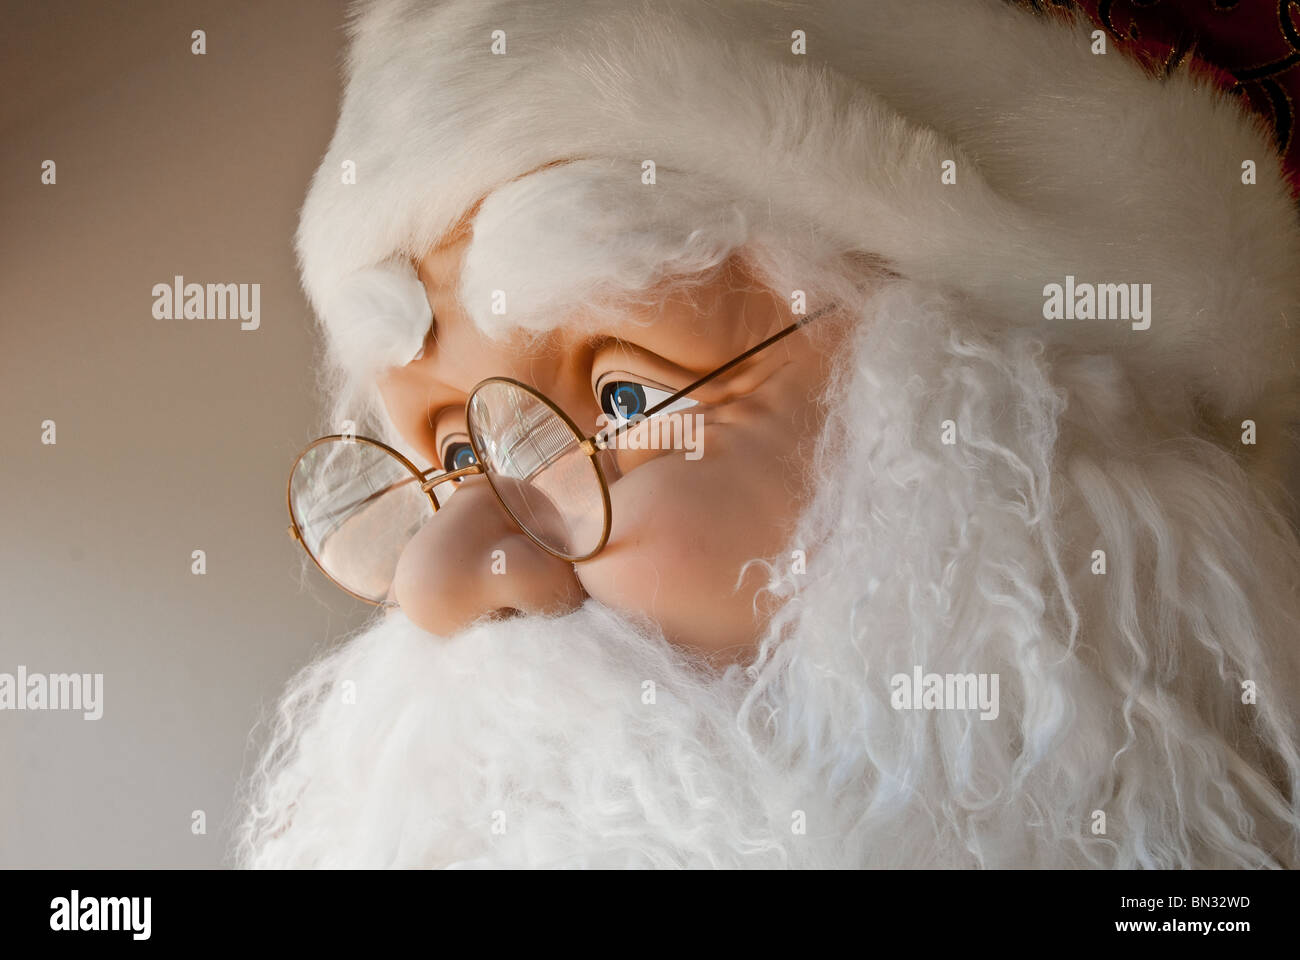 Life-size Santa Claus figure in store display, Orlando, Florida, USA - Stock Image